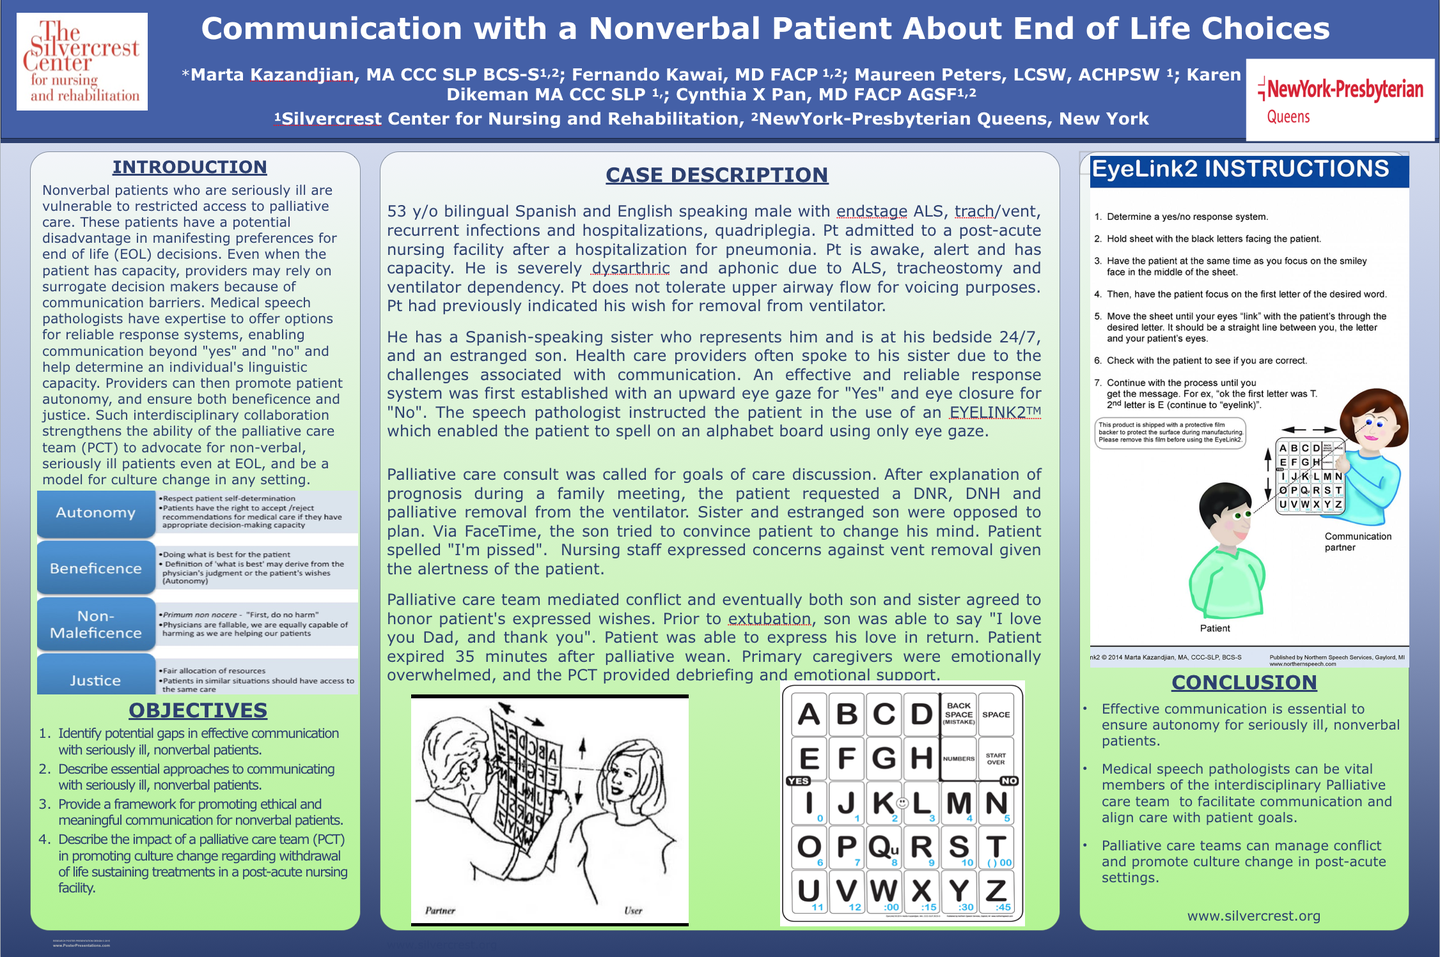 Communication with a Nonverbal Patient about End of Life